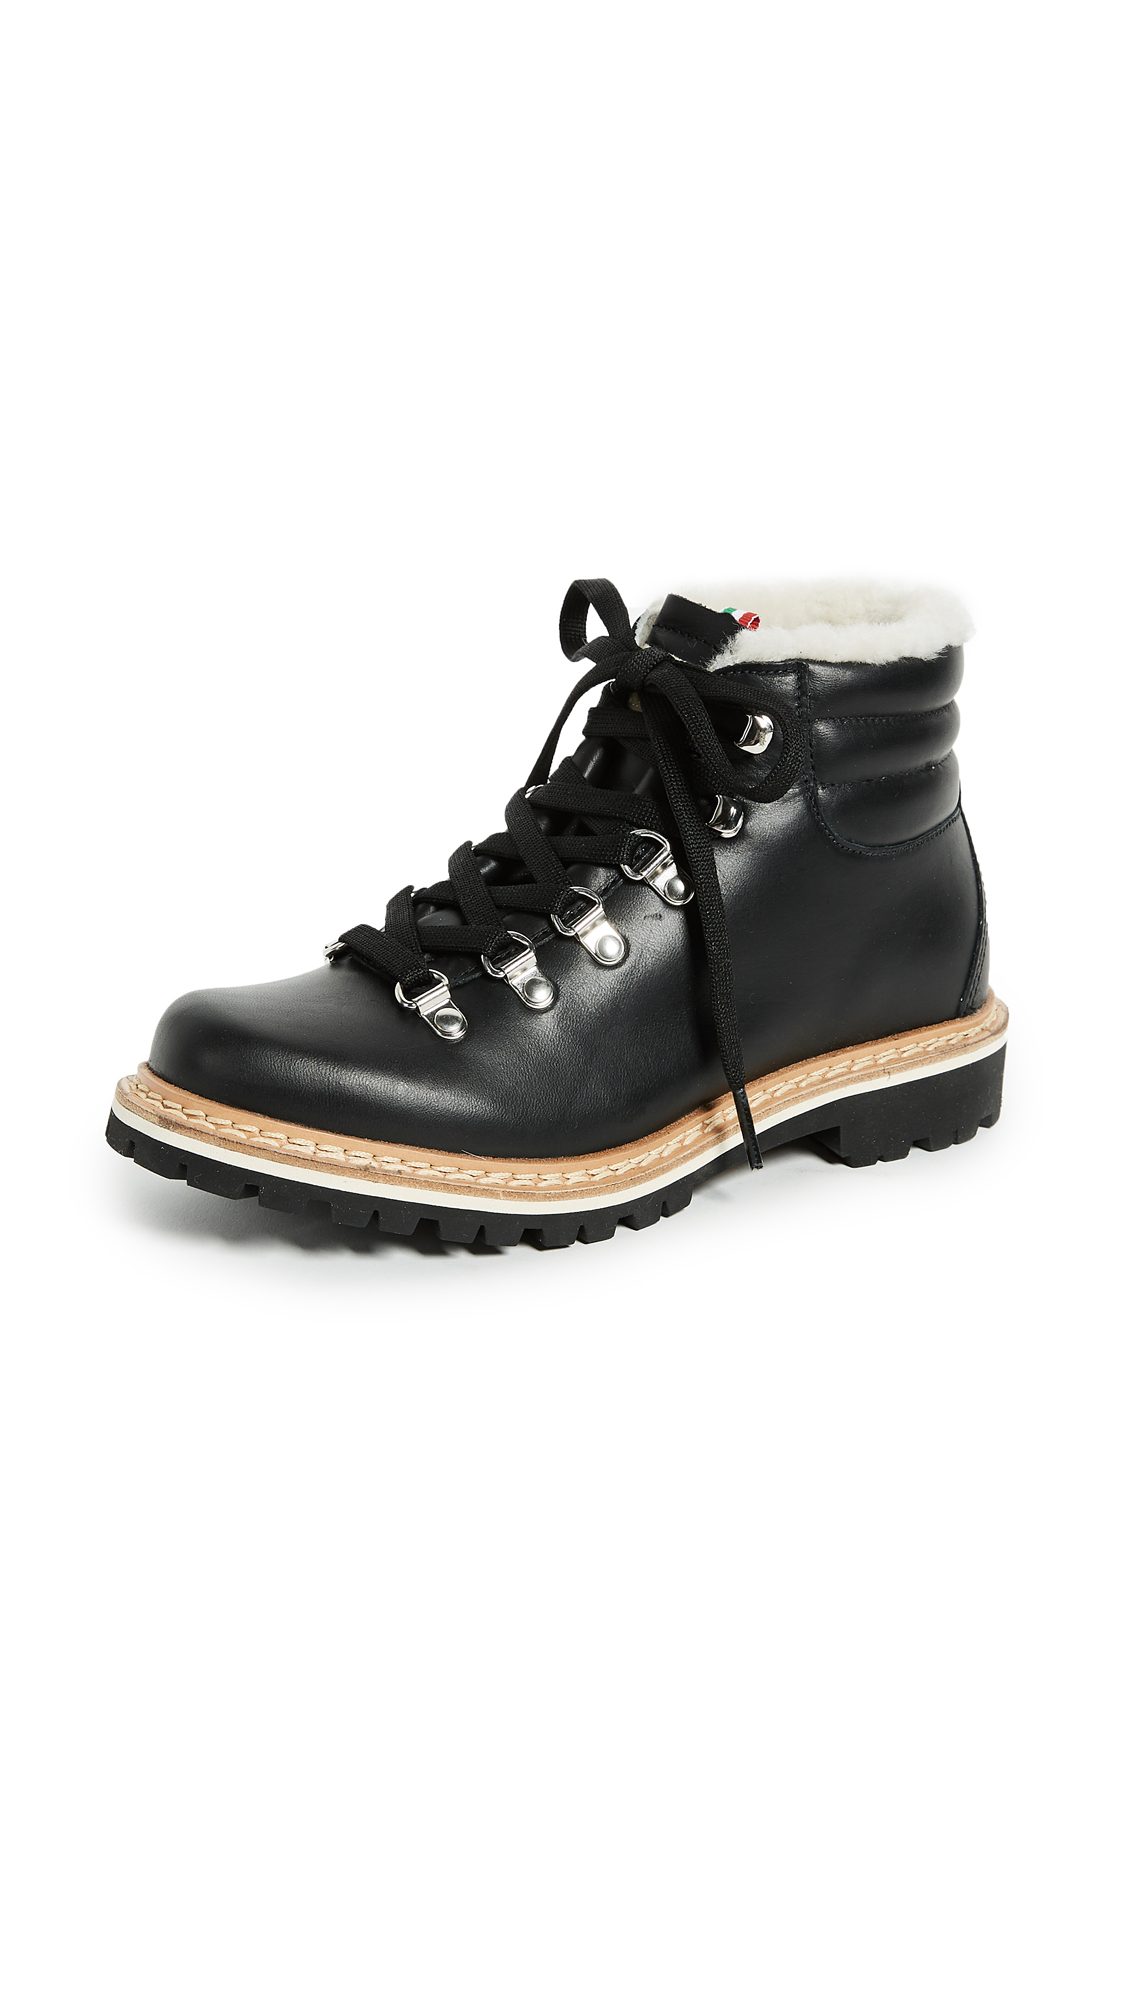 Montelliana Margherita Hiker Boots - Black